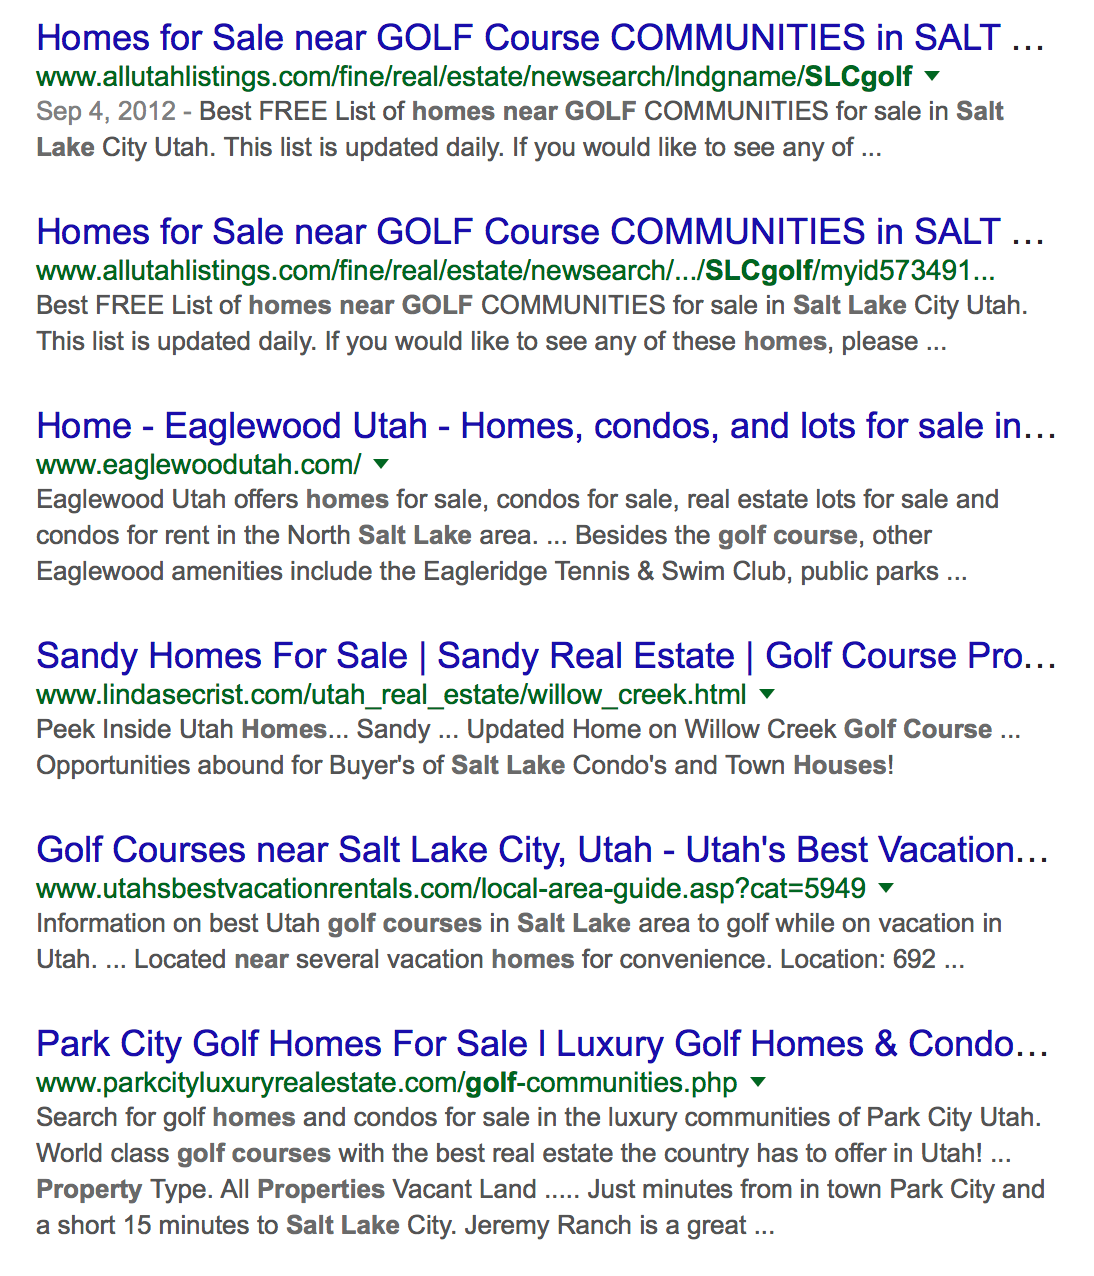 homes_near_golf_courses_salt_lake_-_Google_Search.png